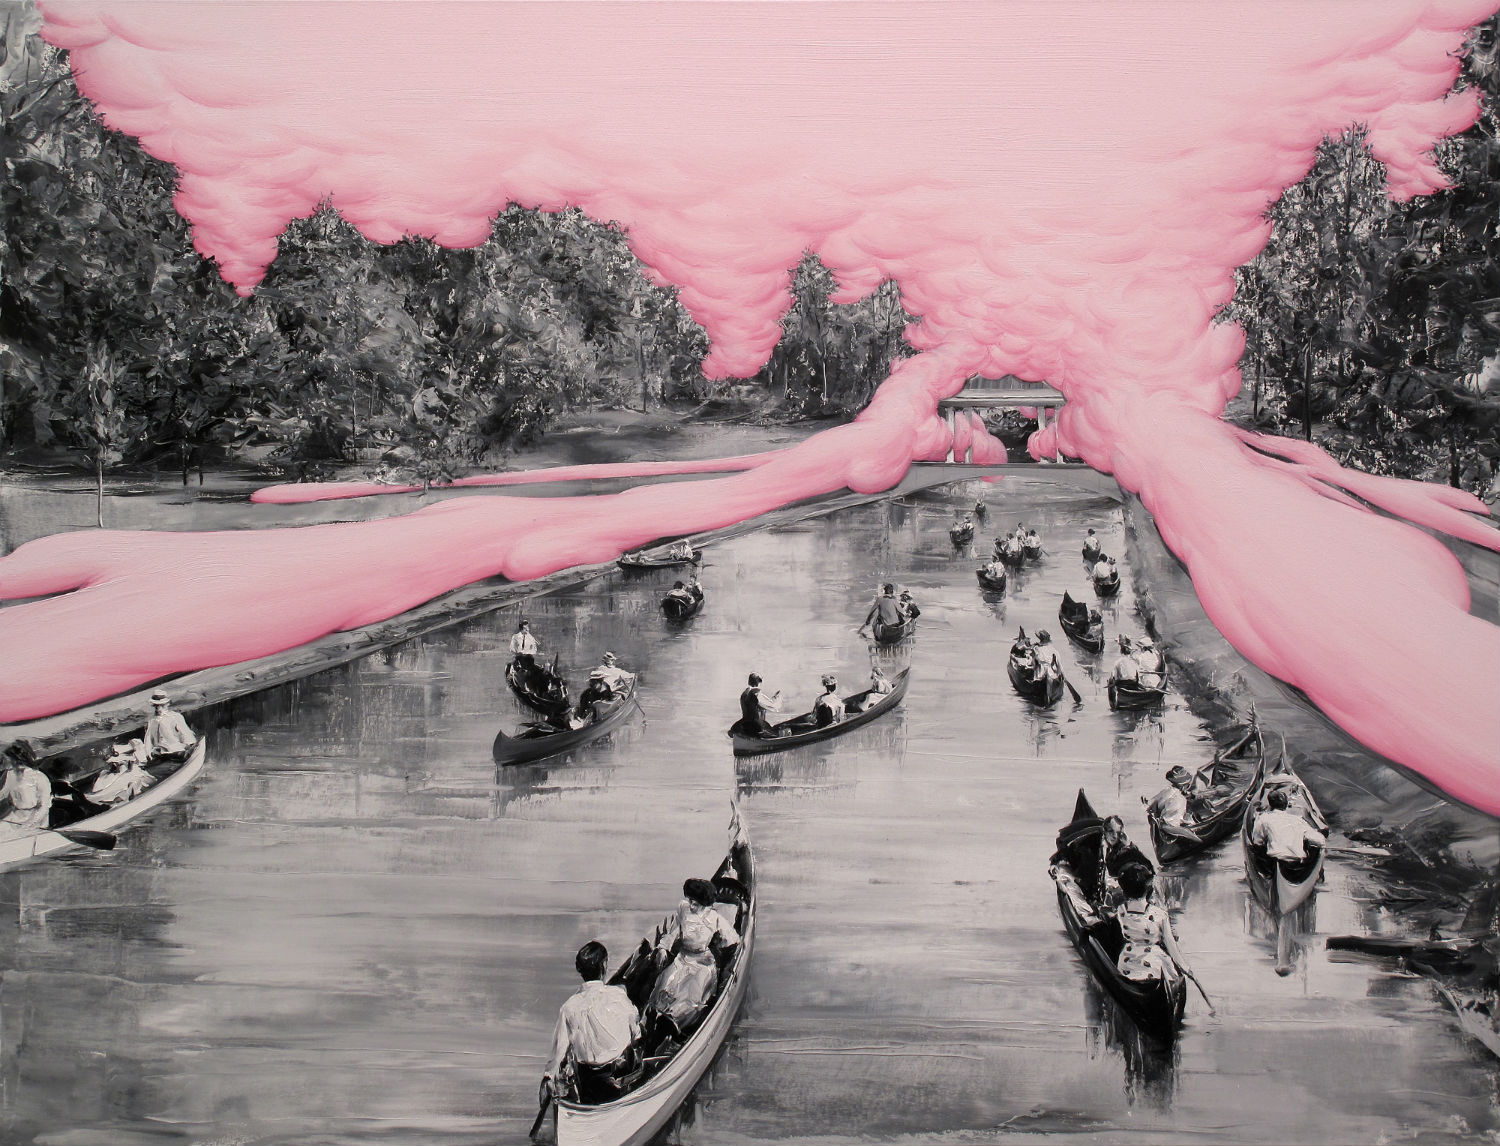 paco pomet bubblegum pink boat painting